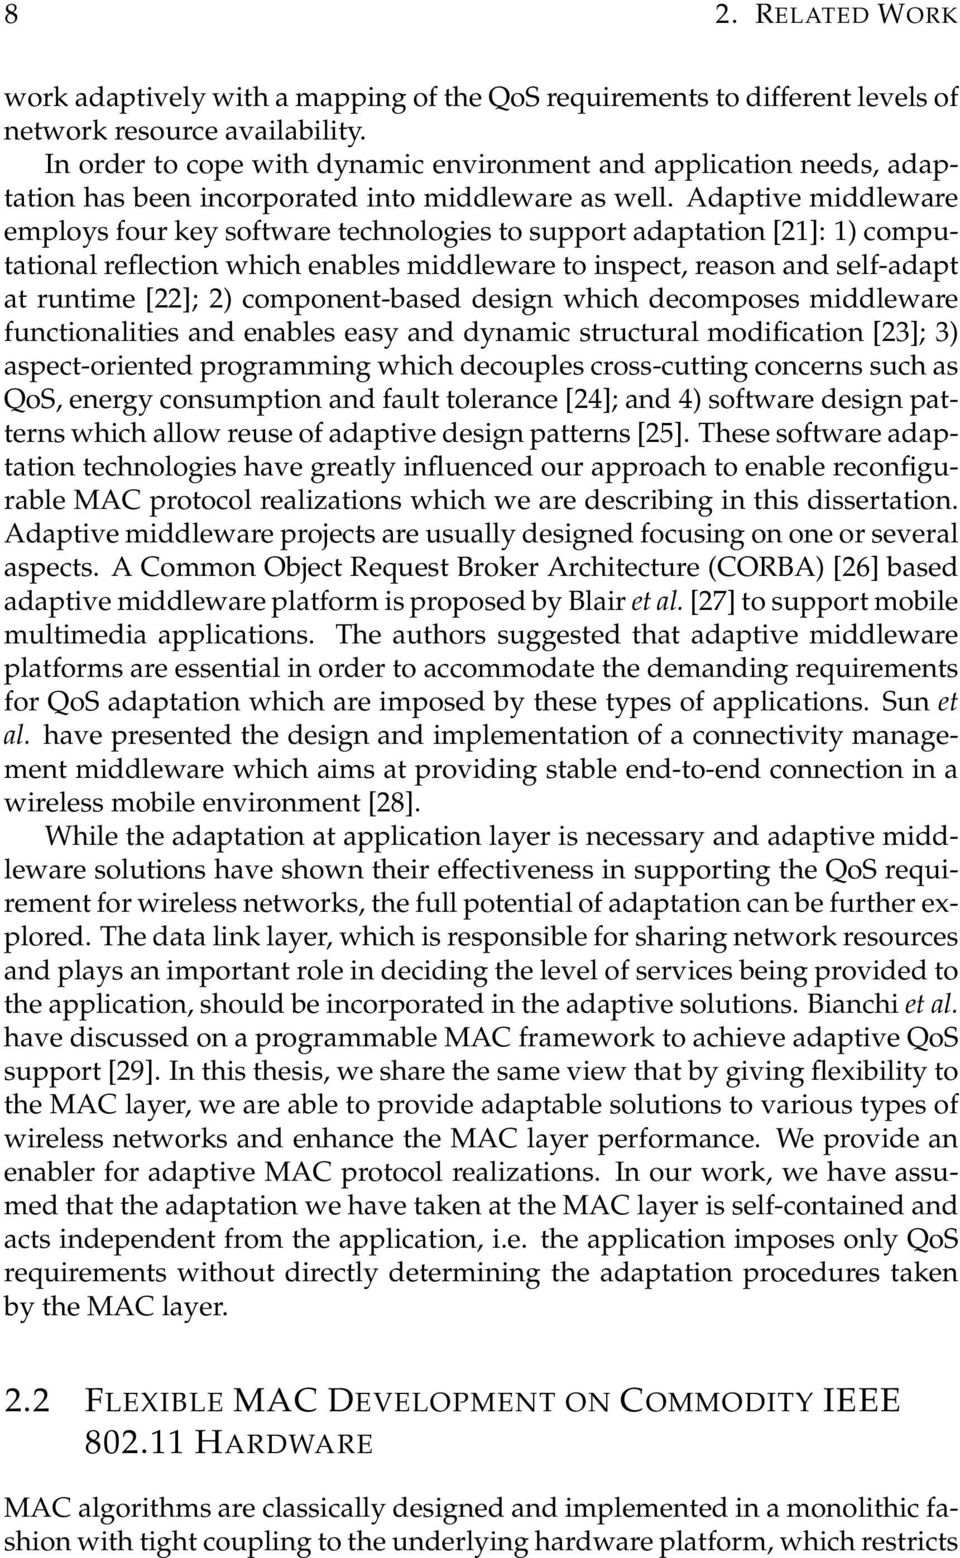 Adaptive middleware employs four key software technologies to support adaptation [21]: 1) computational reflection which enables middleware to inspect, reason and self-adapt at runtime [22]; 2)